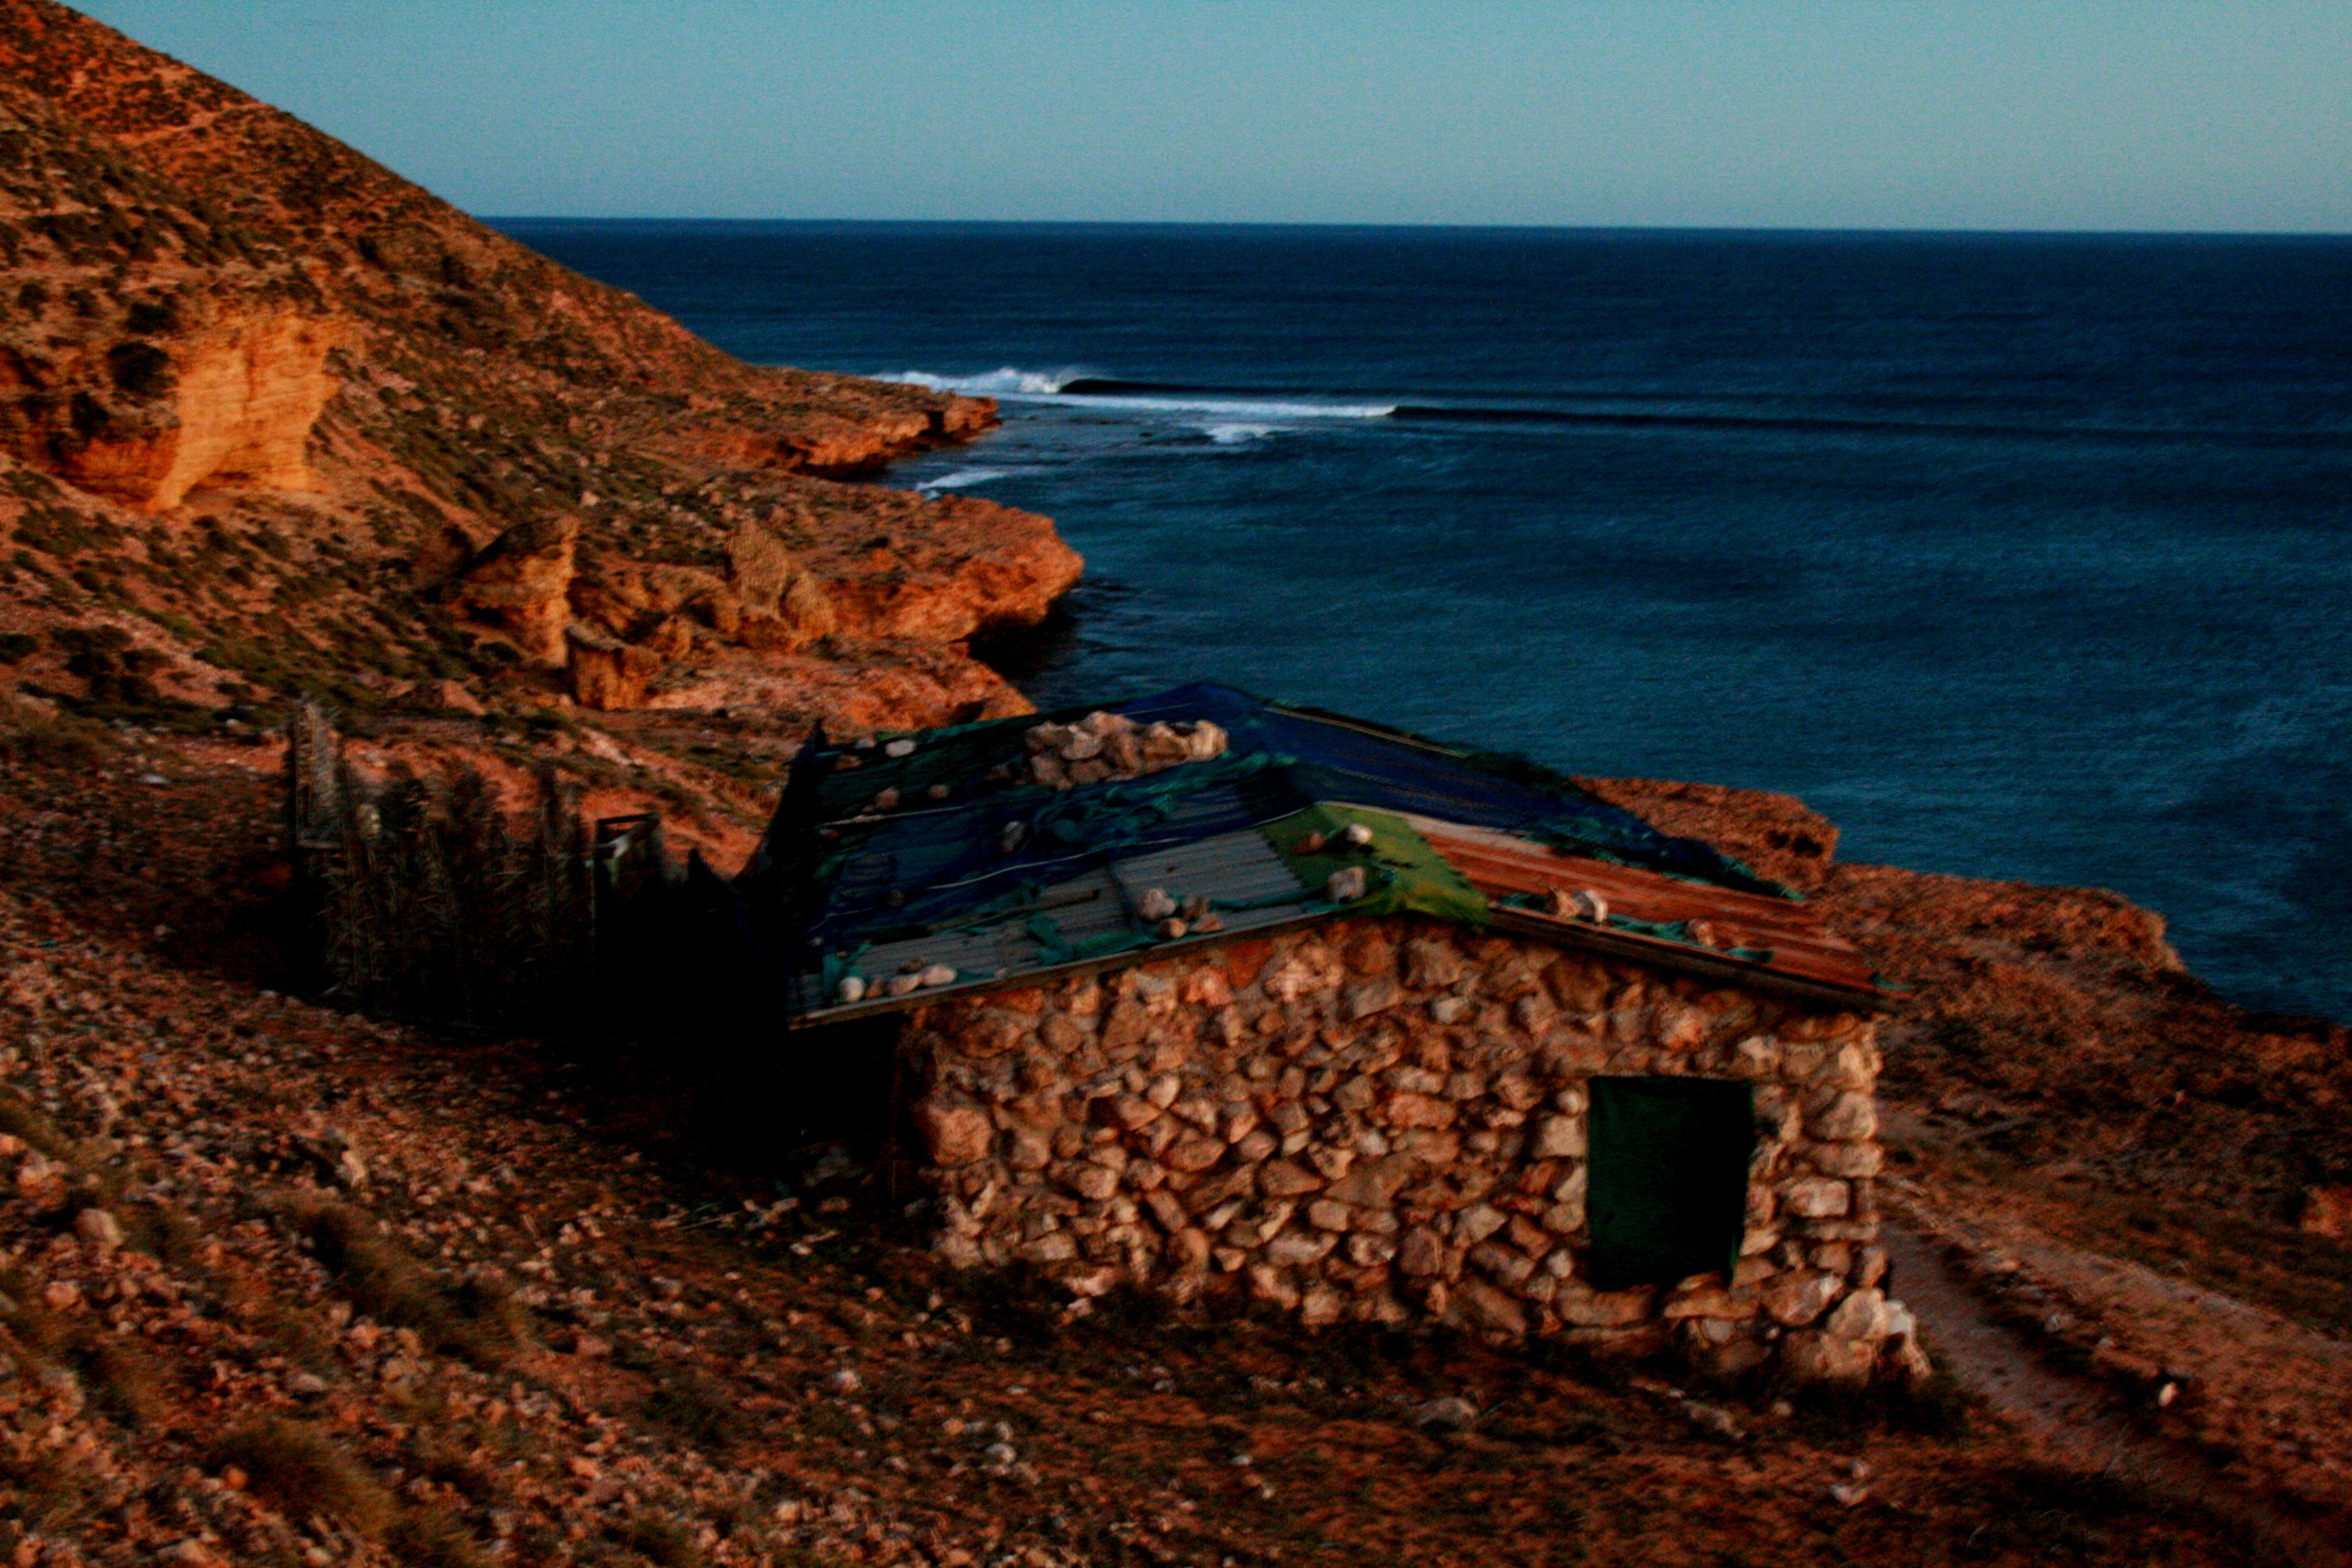 From above the Stonehouse at dawnlooking to the point. Photo: Tom